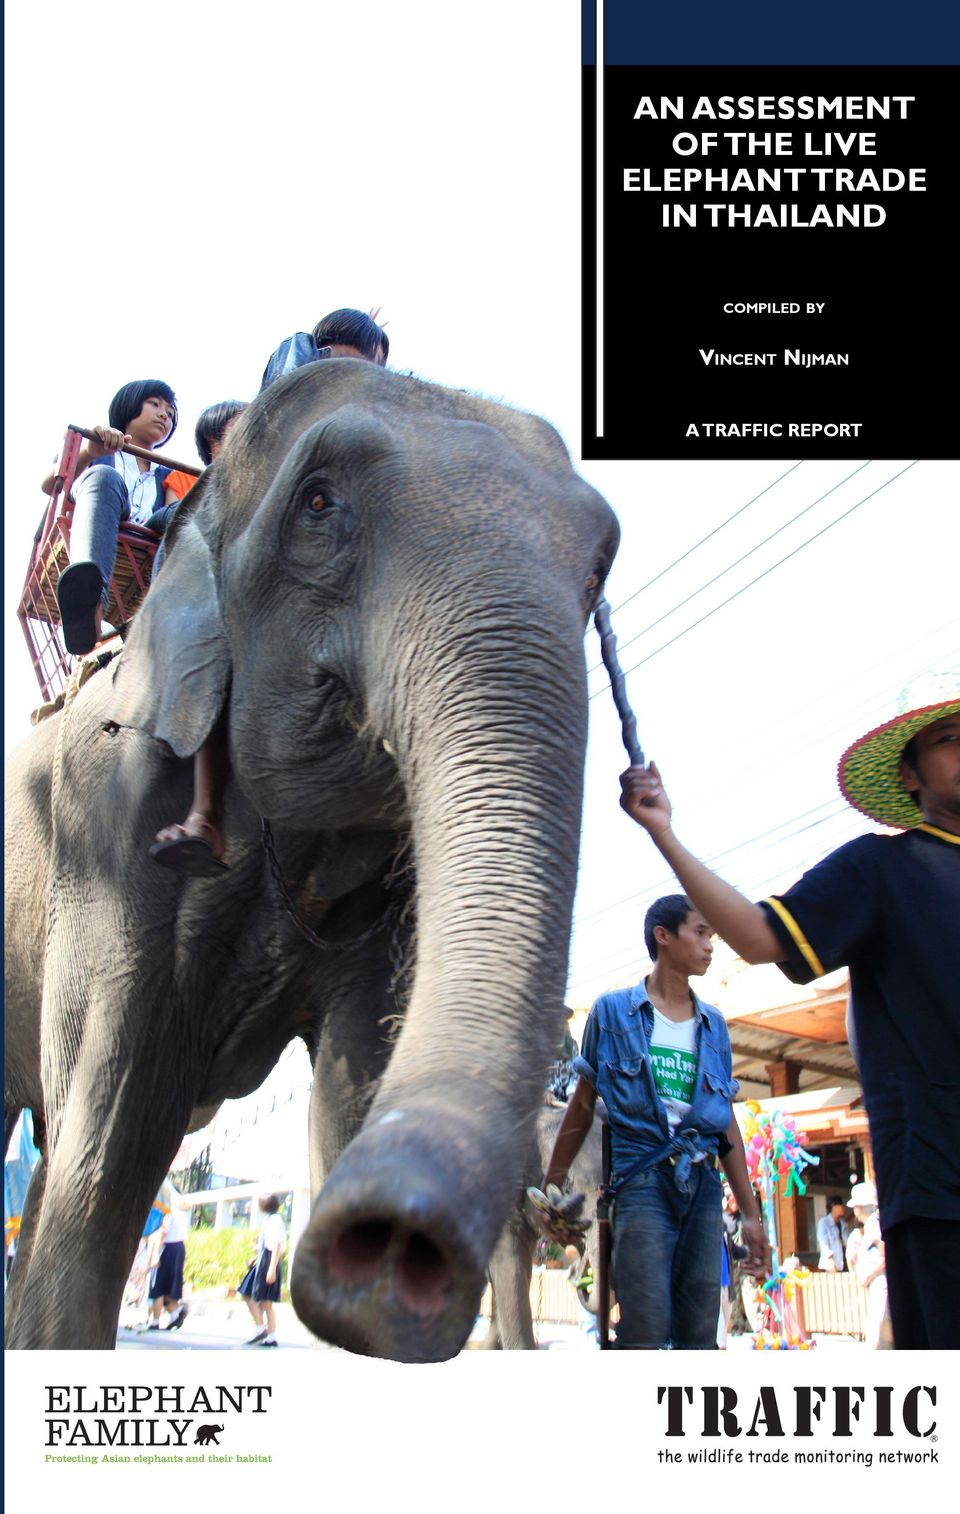 ELEPHANT TRADE IN THAILAND